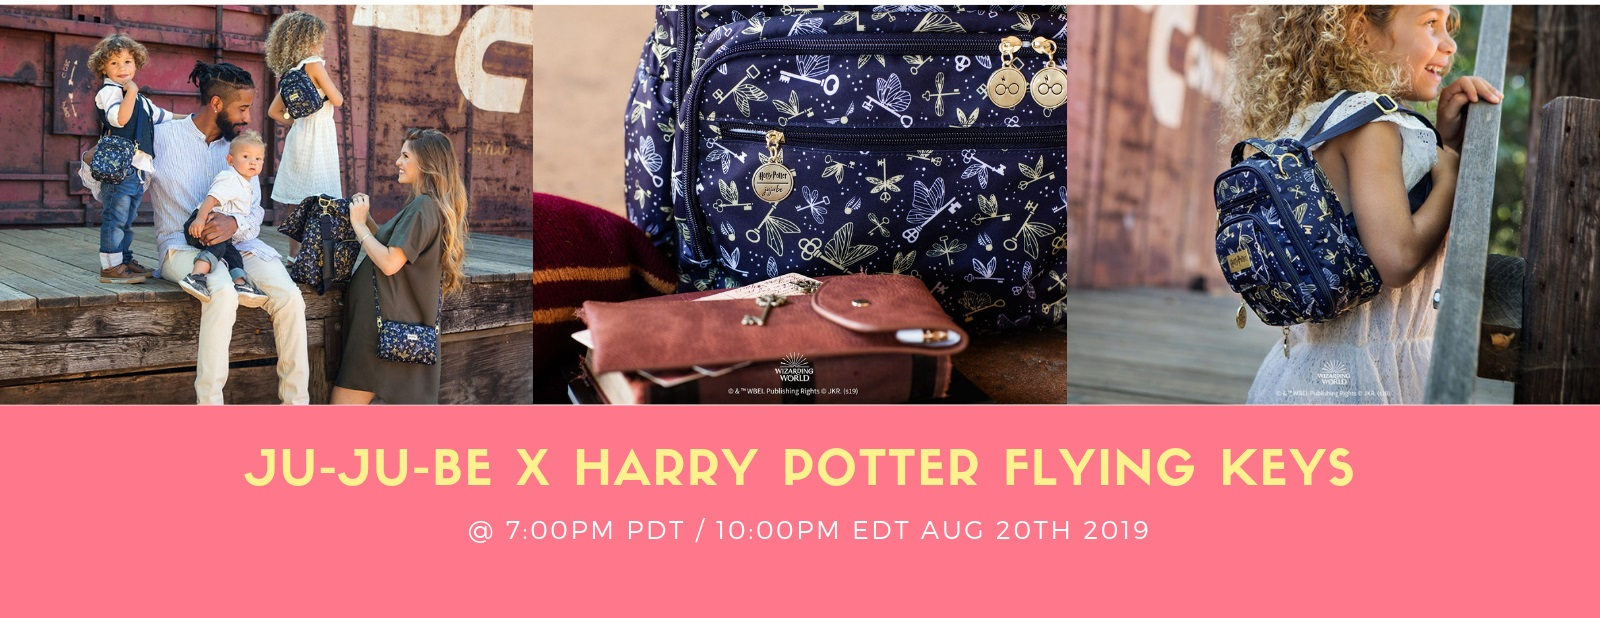 jujube x harry potter flying keys release